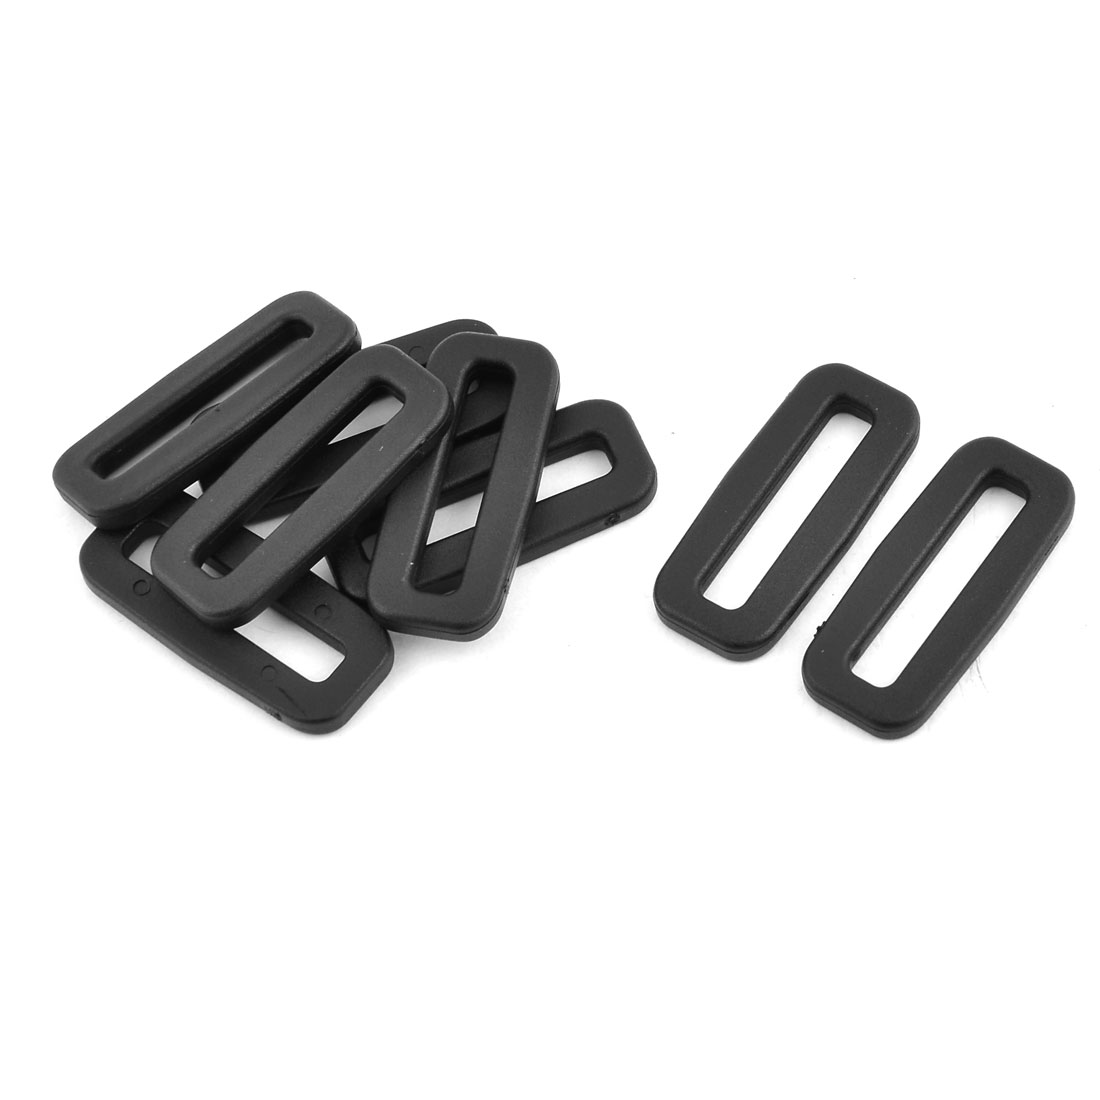 Plastic Backpack Tension Connector Tri Glide Buckles Black 32mm Strap Width 8pcs